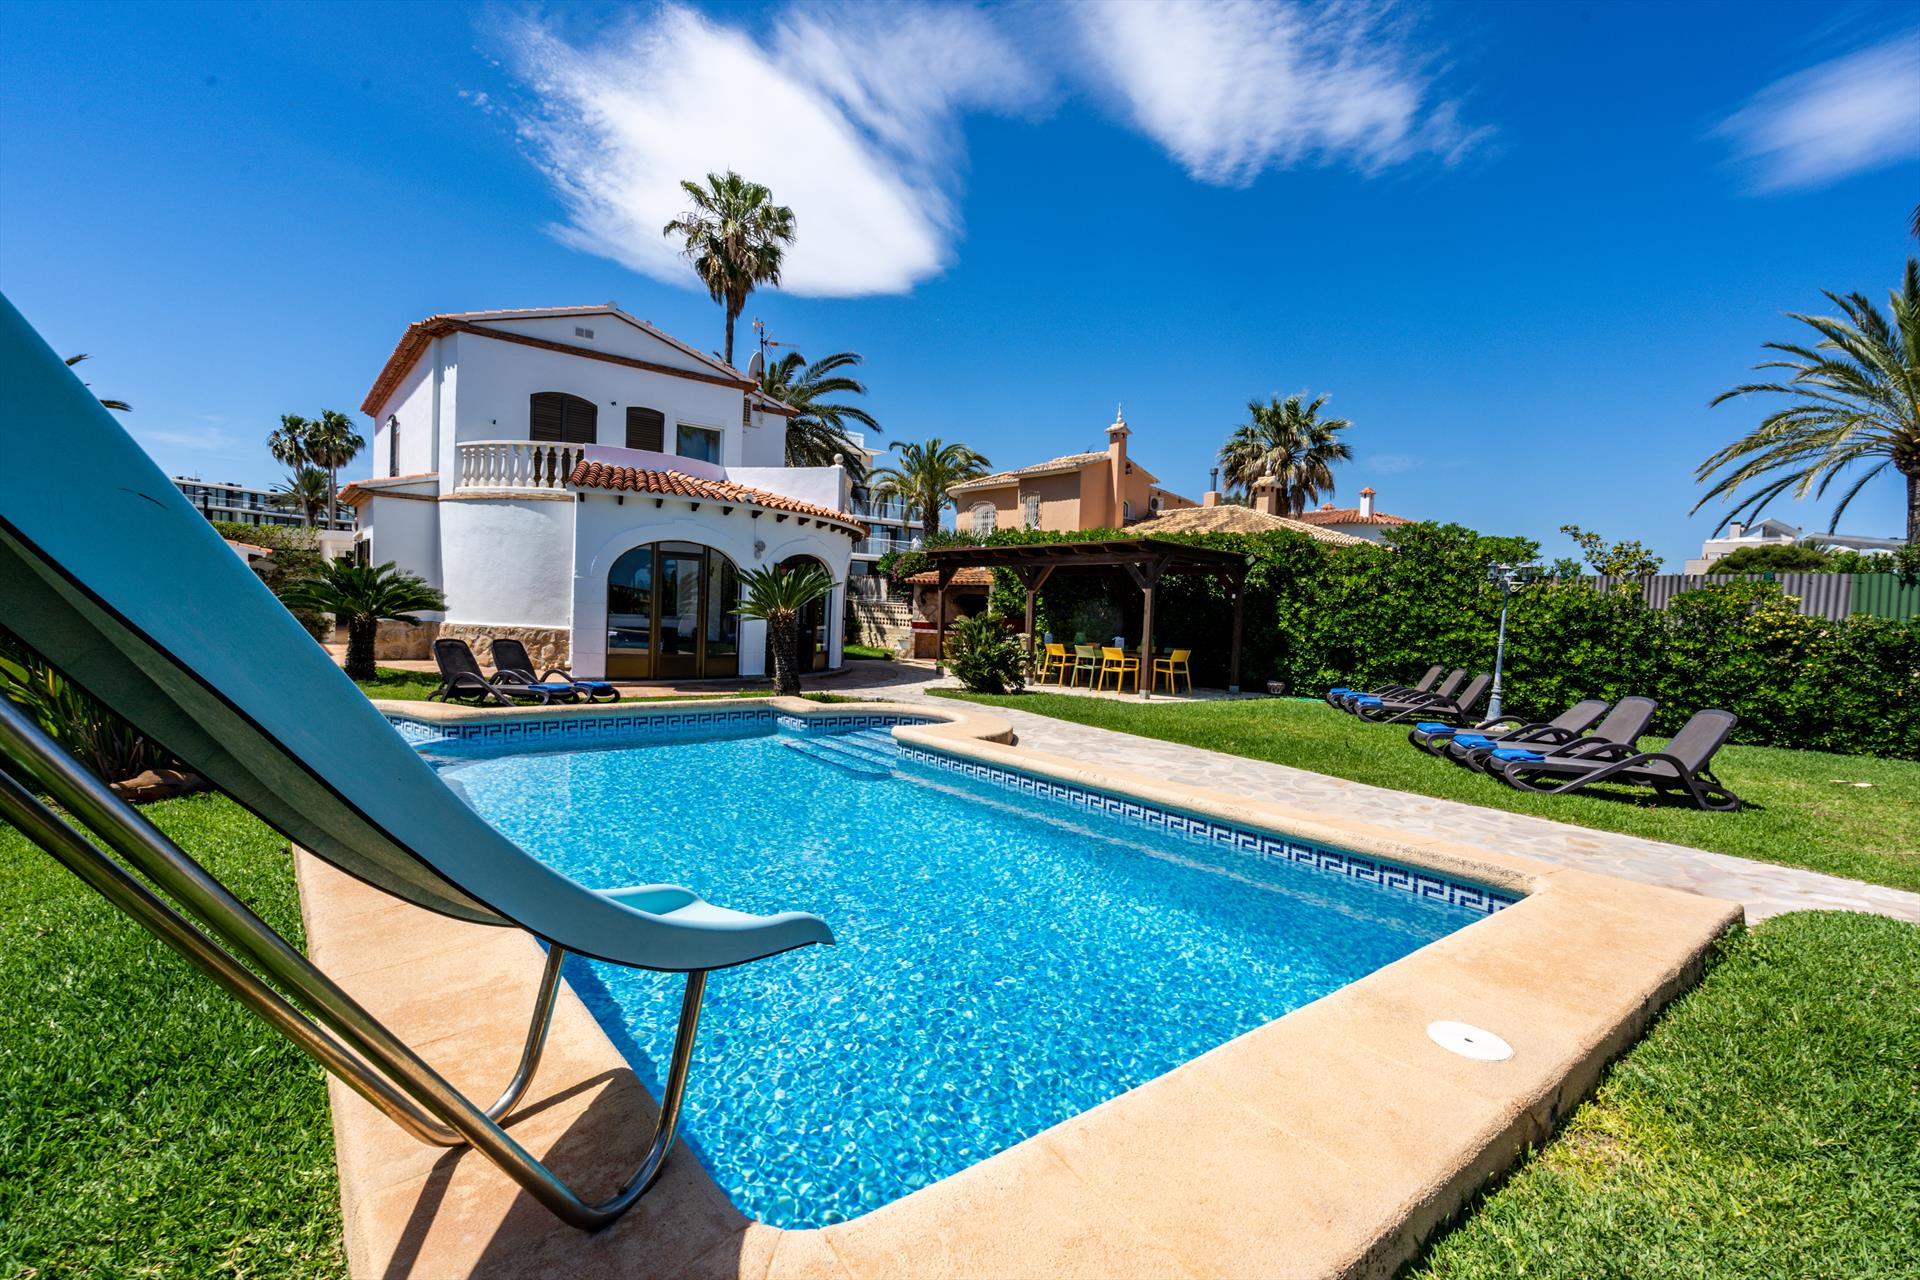 Villa Neptun 6, Villa  with private pool in Denia, on the Costa Blanca, Spain for 6 persons...